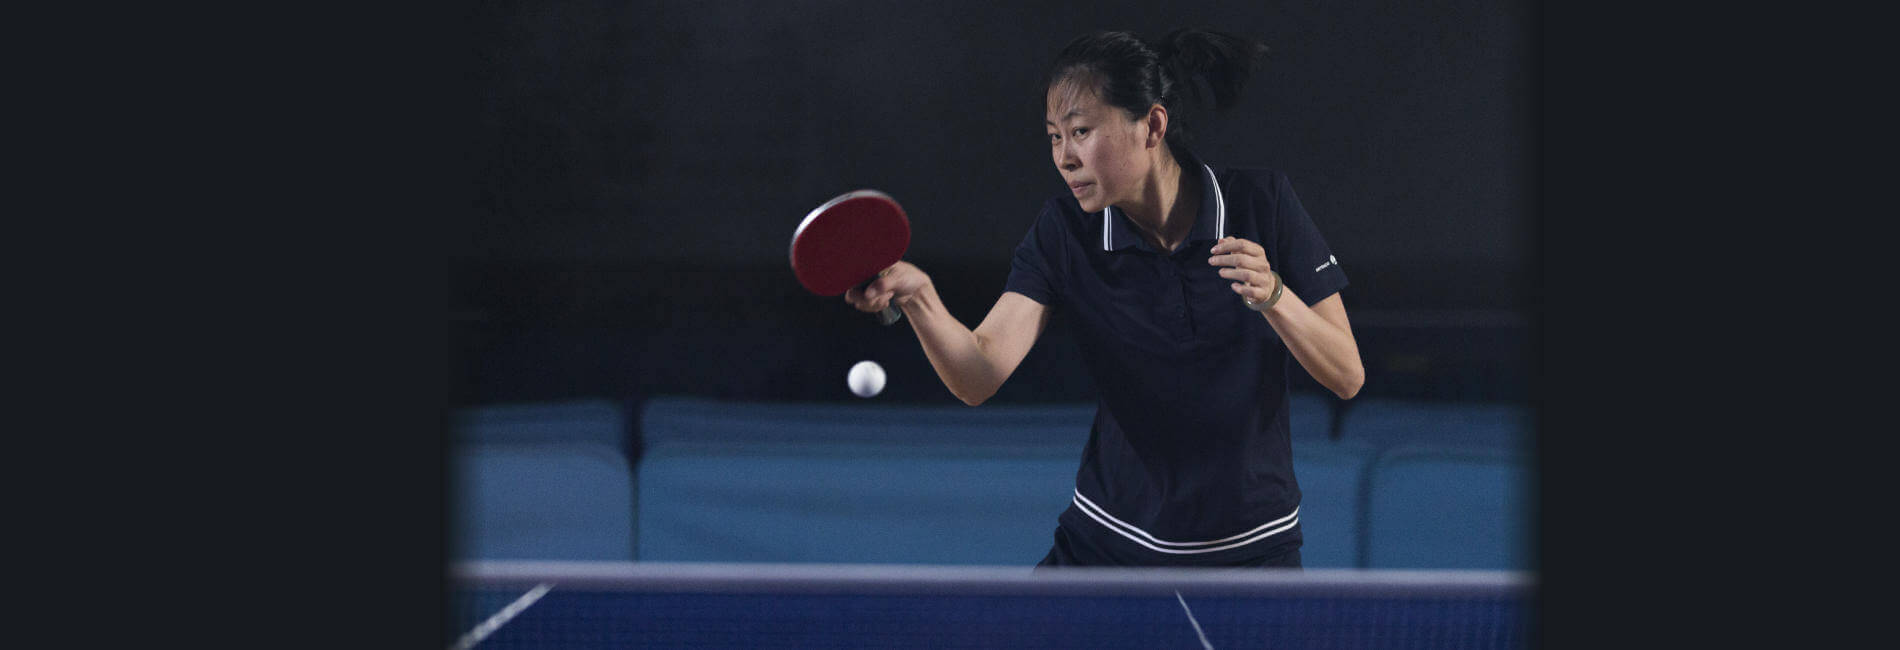 Discover Table Tennis